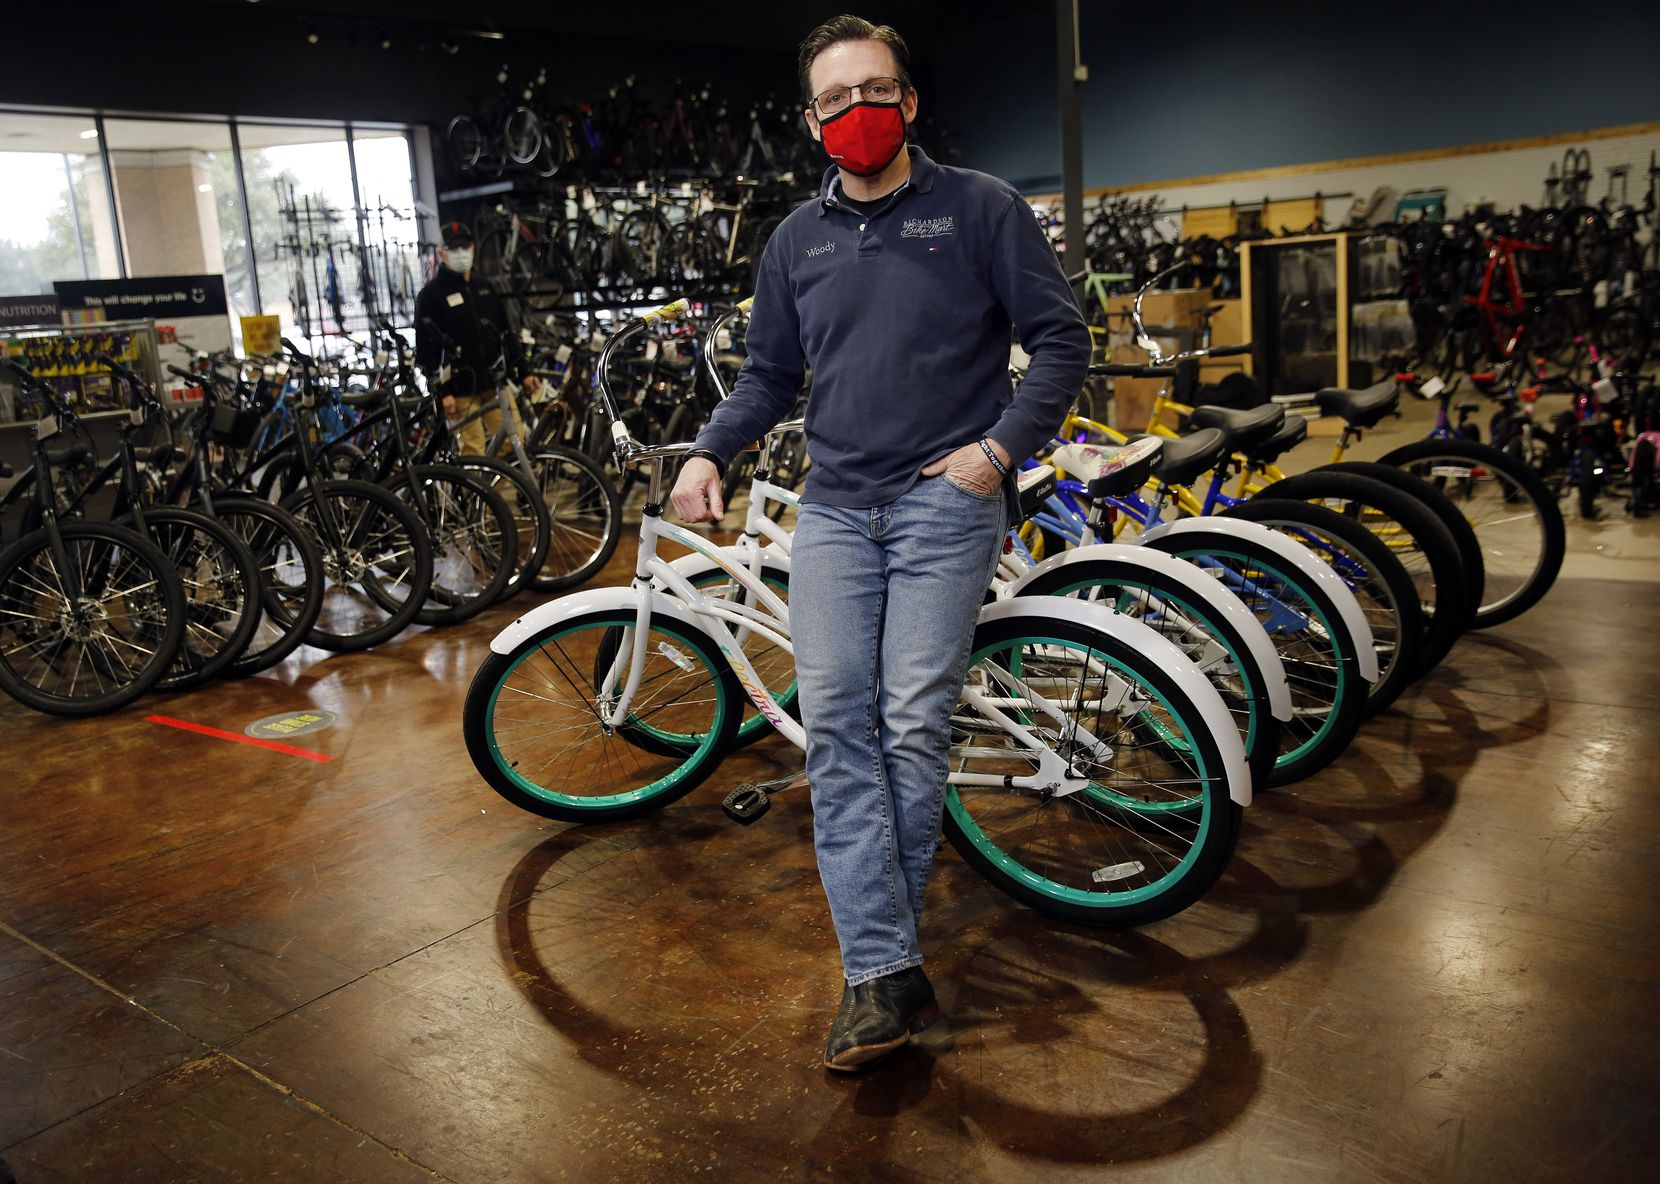 Richardson Bike Mart owner Woody Smith has bikes in his four local stores because he's broadened the brands he carries and is placing 10 times the orders he did before the pandemic. That hasn't eliminated waiting lists for the most popular models, but it has made some customers happy who aren't set on a certain bike.